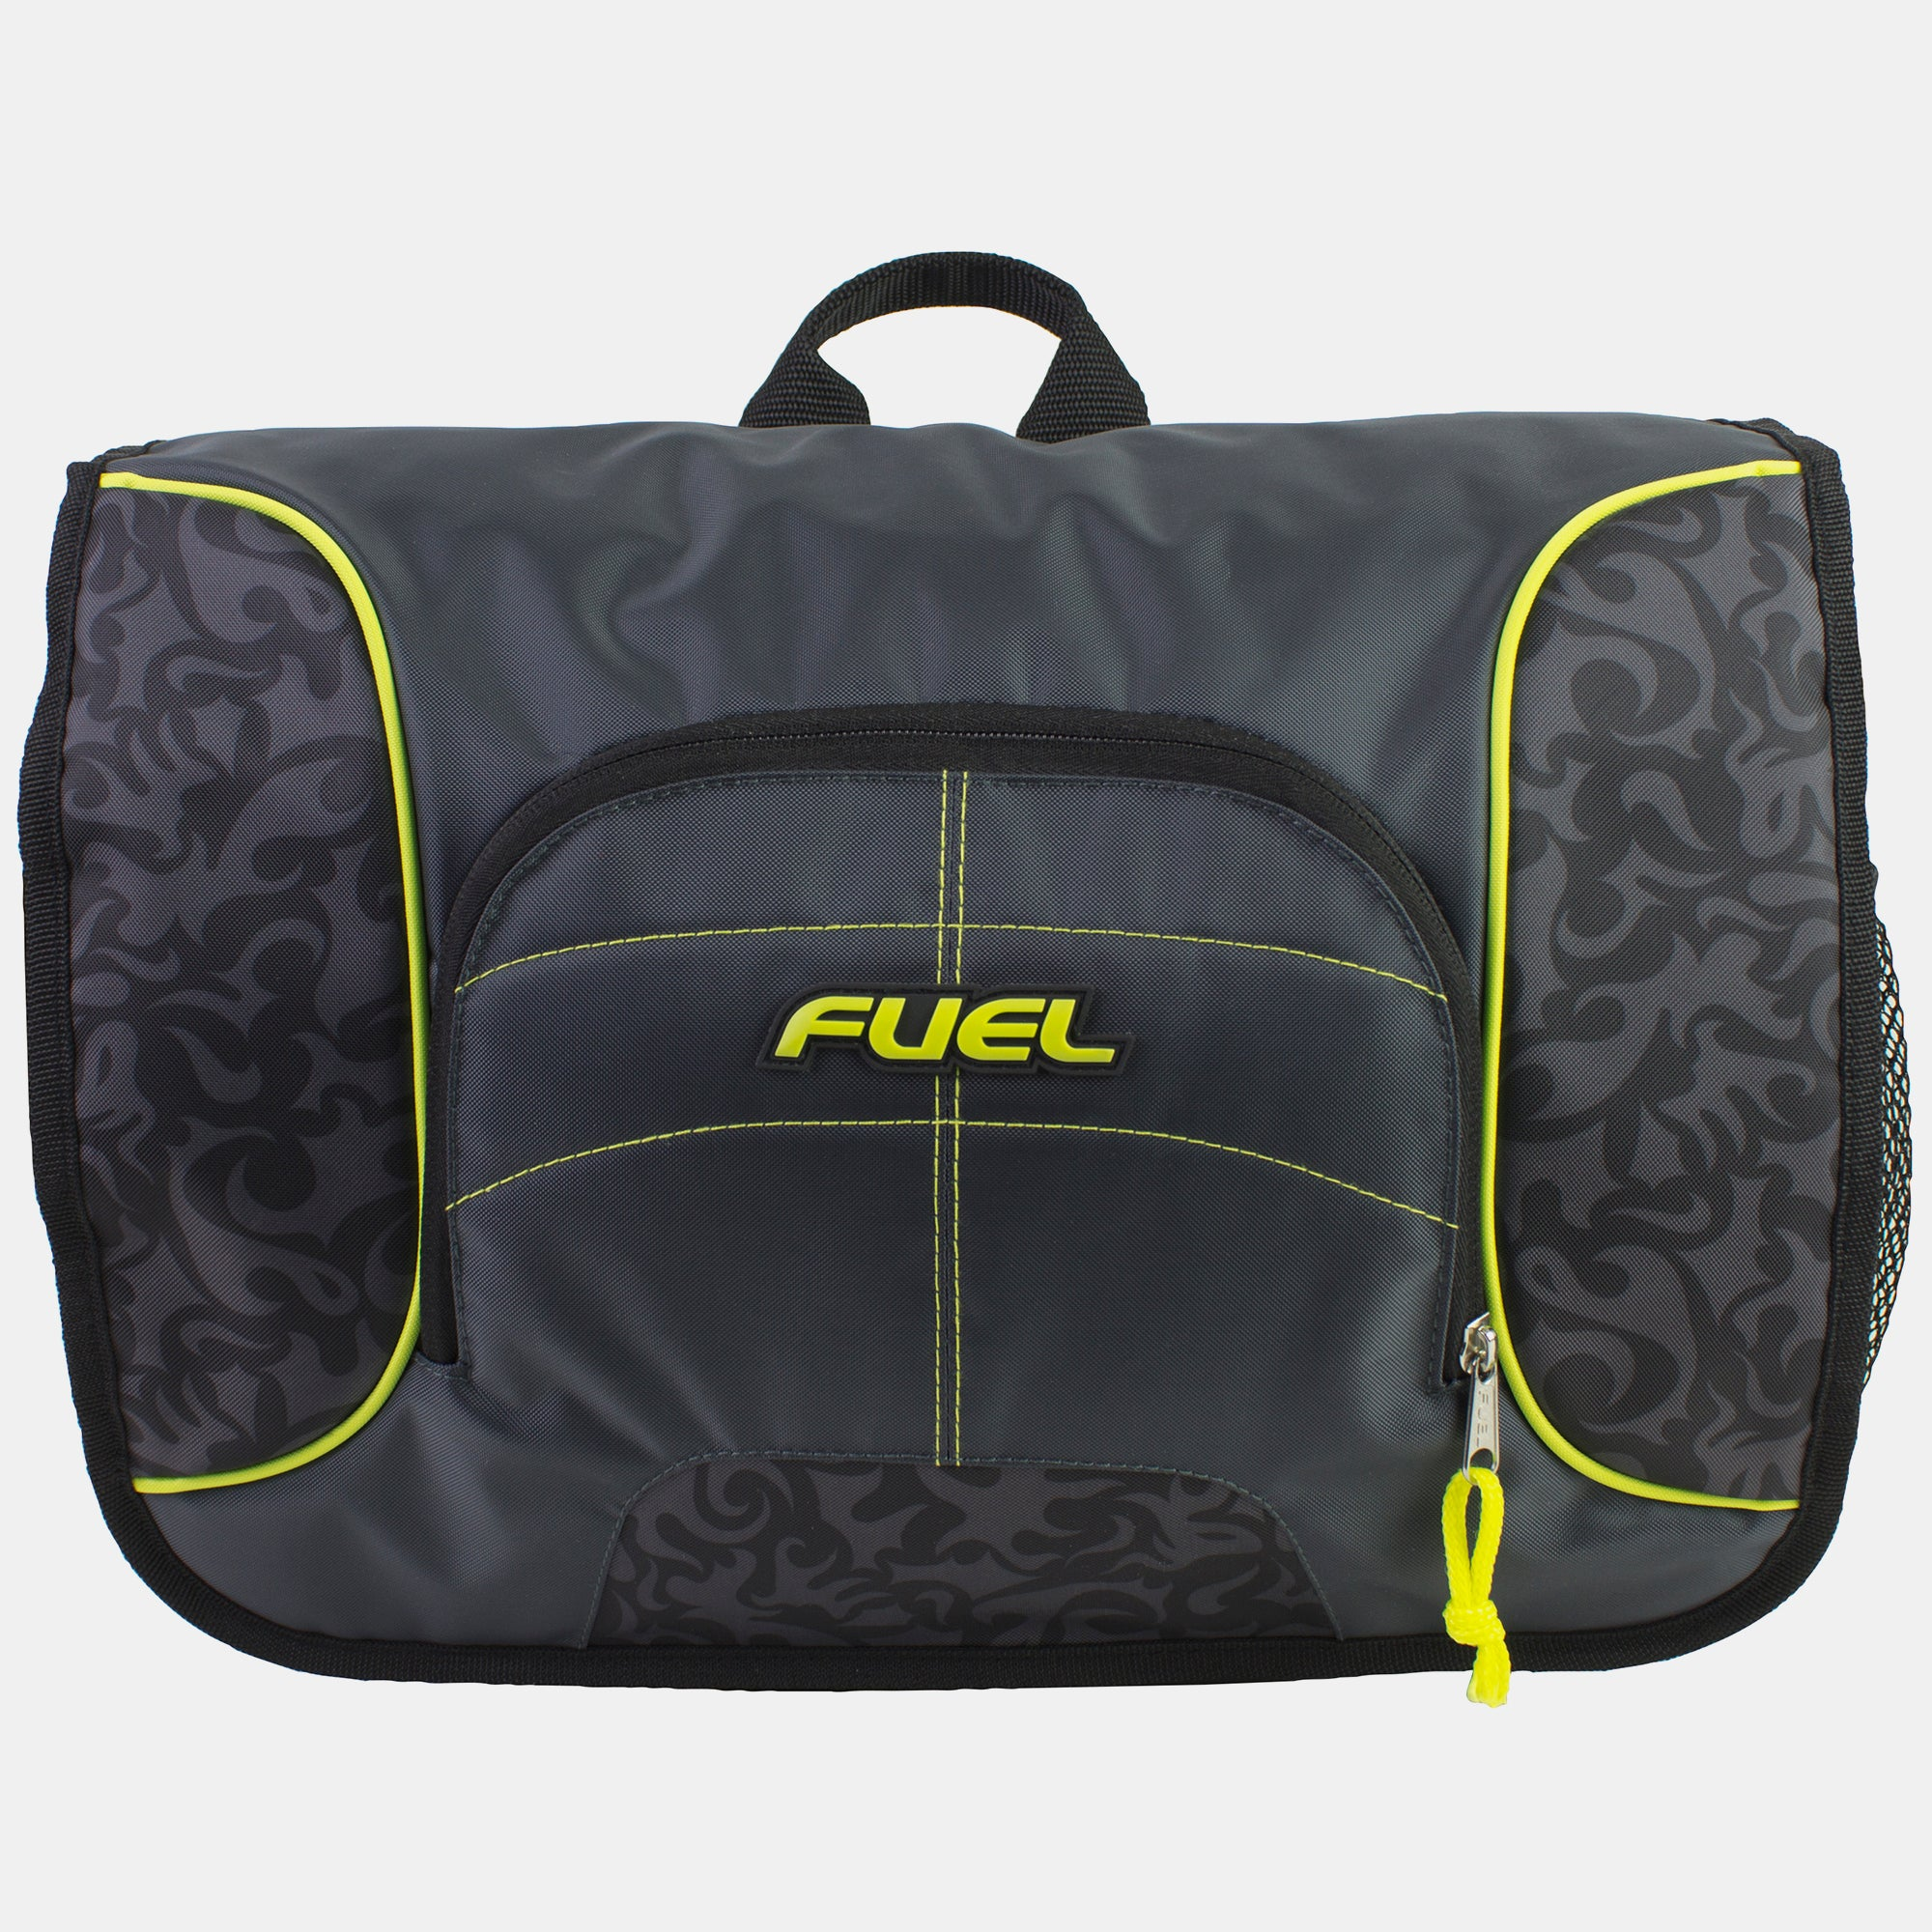 Fuel Printed Messenger